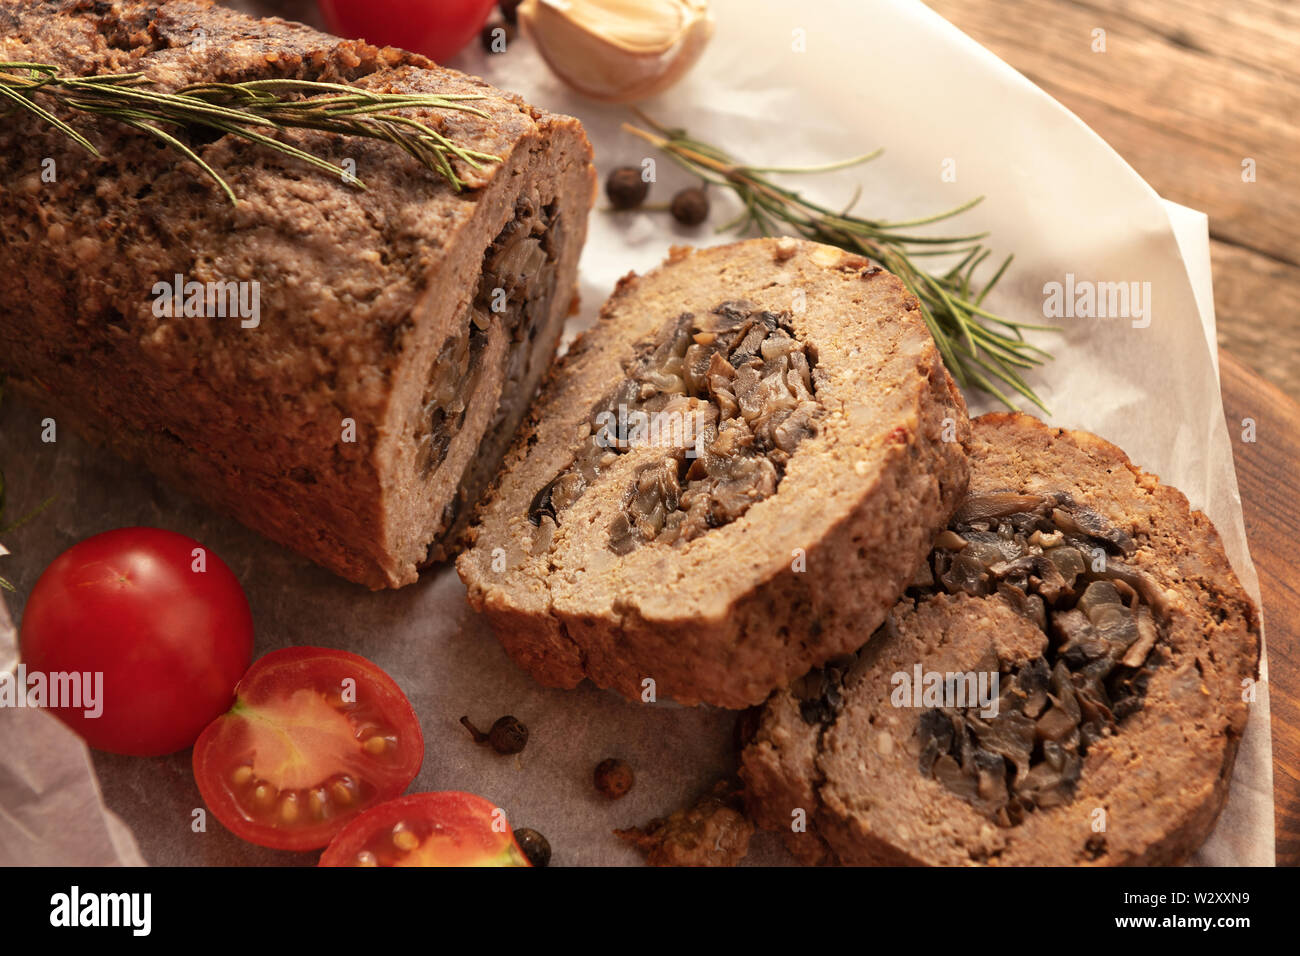 Tasty Meatloaf with mushrooms on wooden table - Stock Image